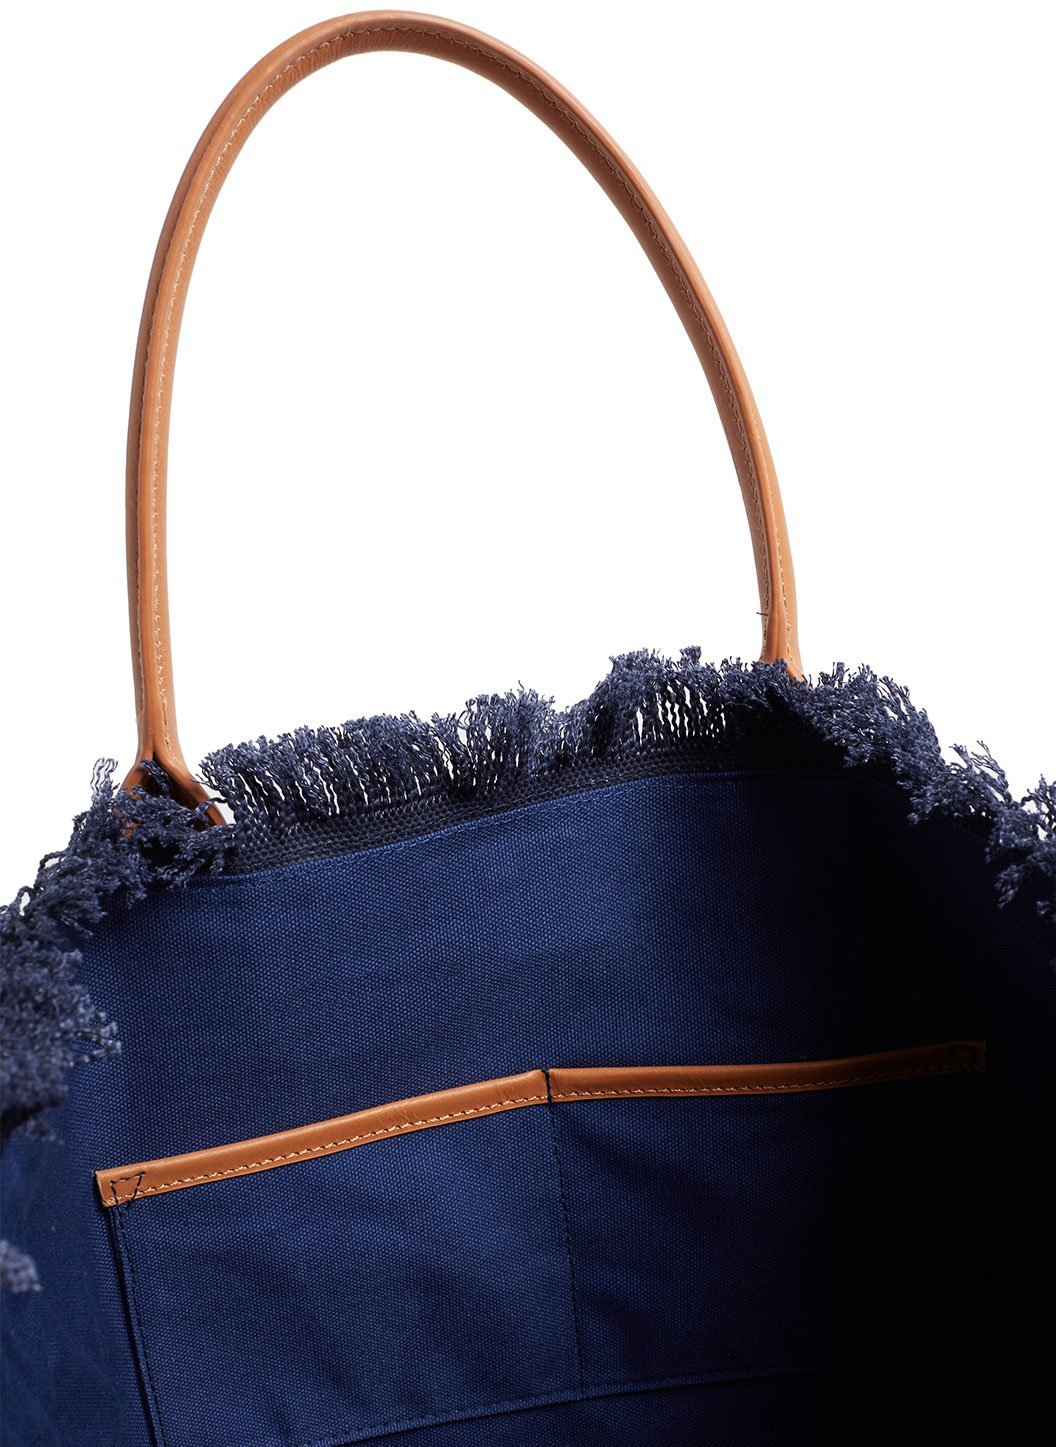 cap ferrat large beach tote navy 4 2019